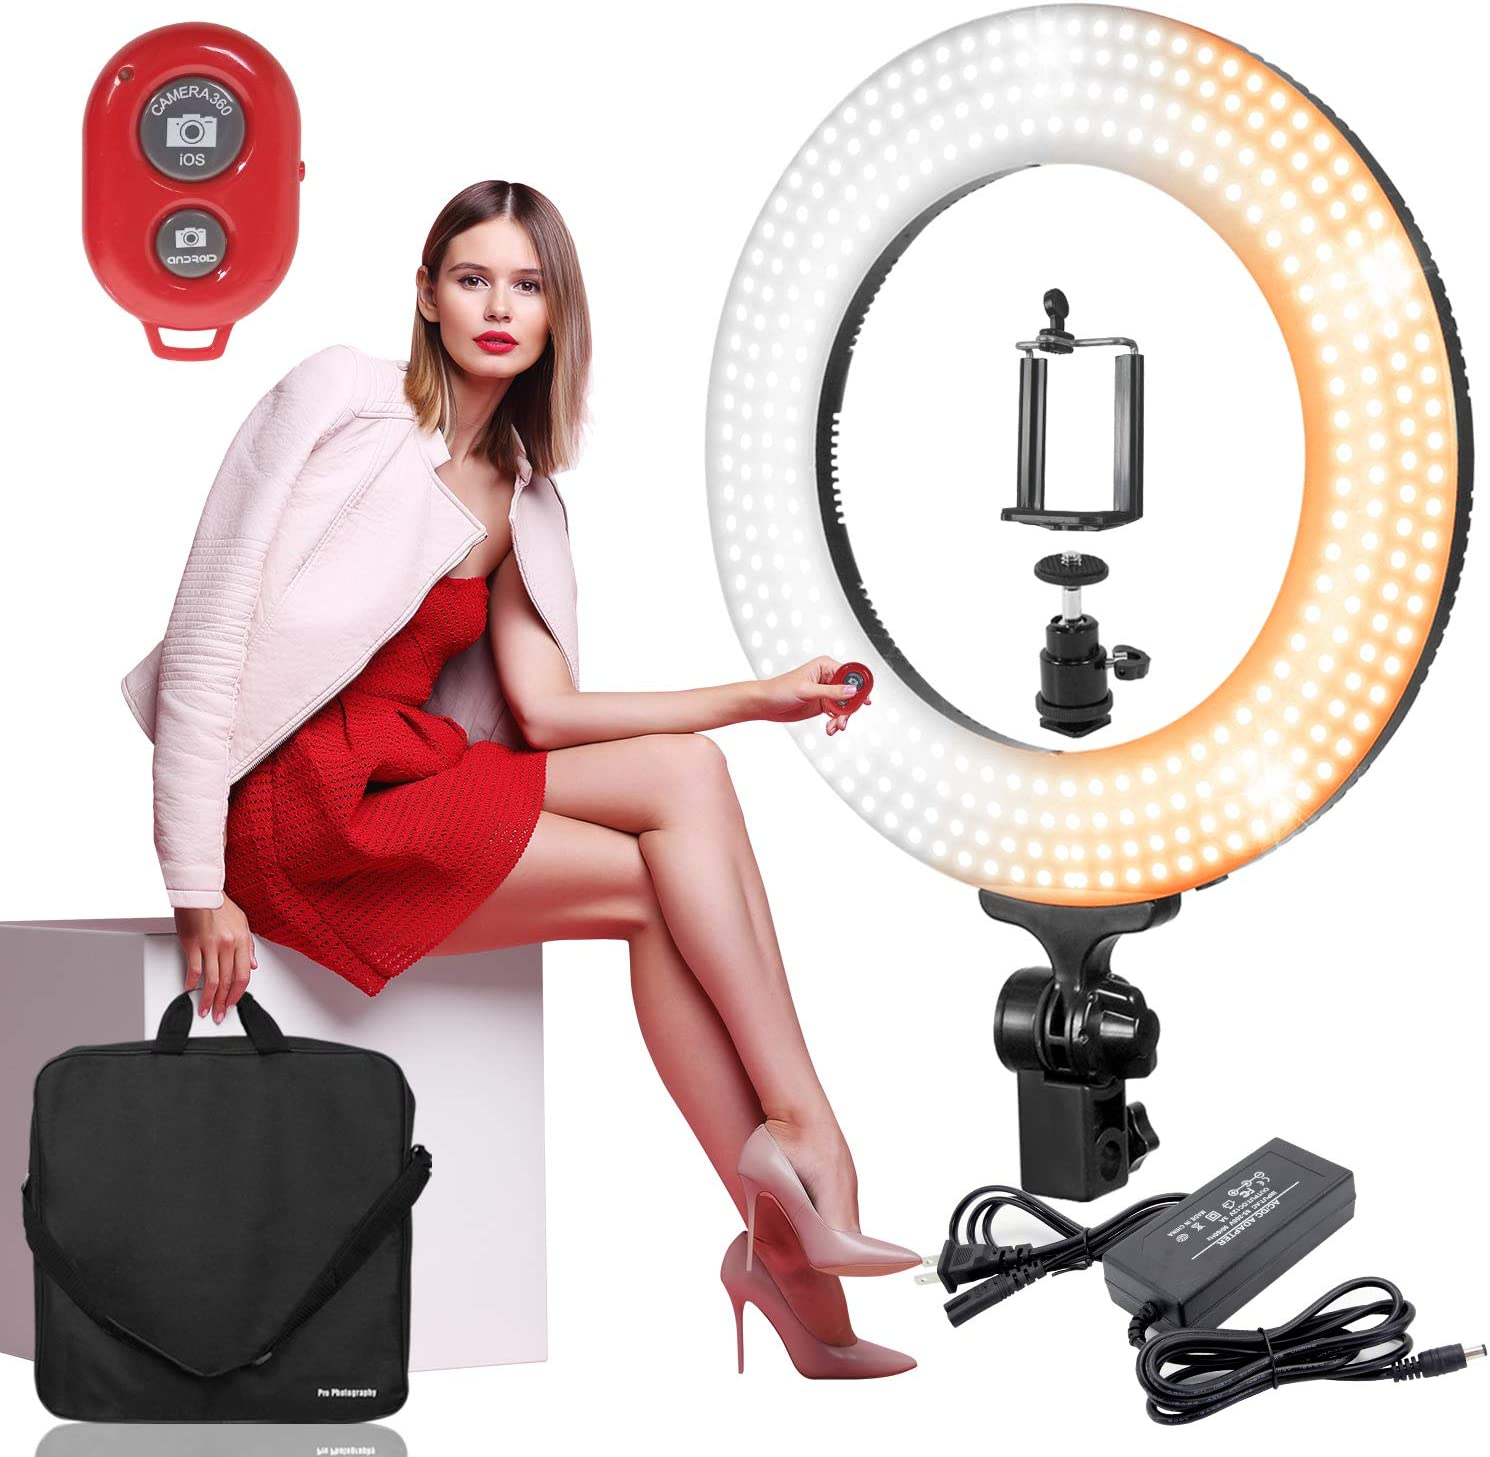 Cold//Warm Dual Color Dimmable Continuous Lighting for Beauty Facial Shoot with Bluetooth Remote Camera Shutter PROMOAGG2818/_V2 LimoStudio 14 LED Round Ring Light